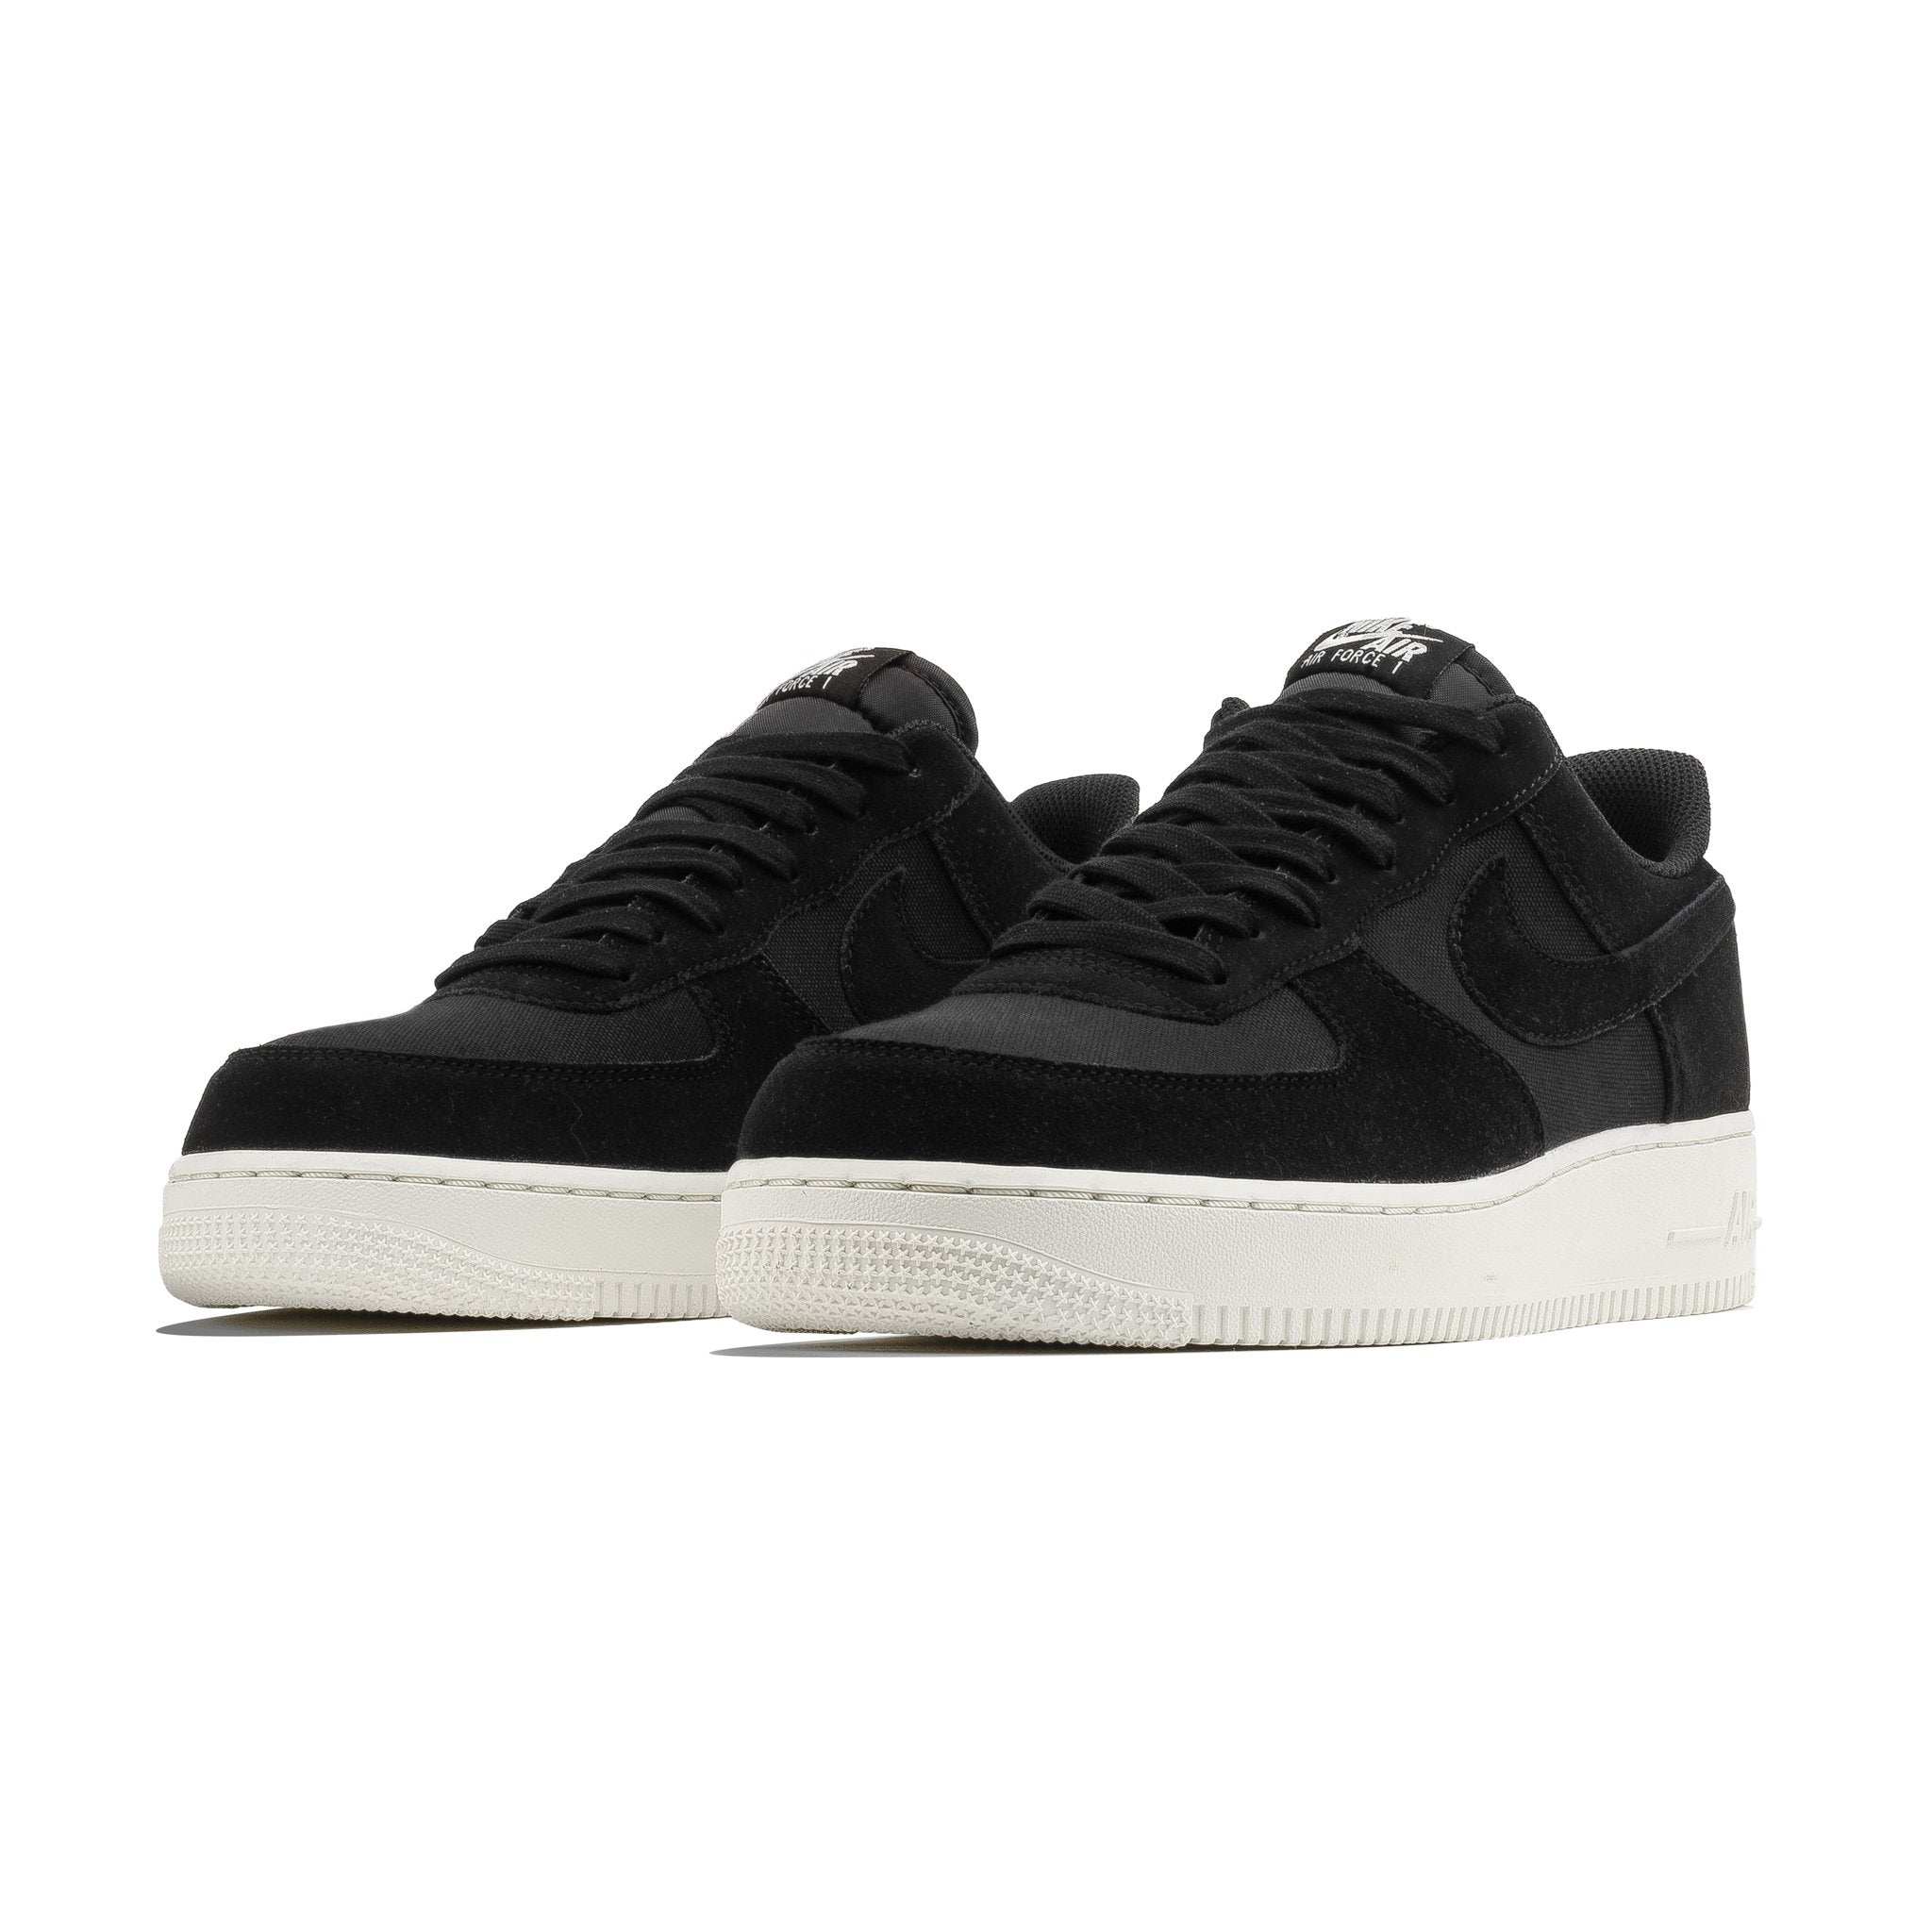 Air Force 1 '07 Suede AO3835-001 Black